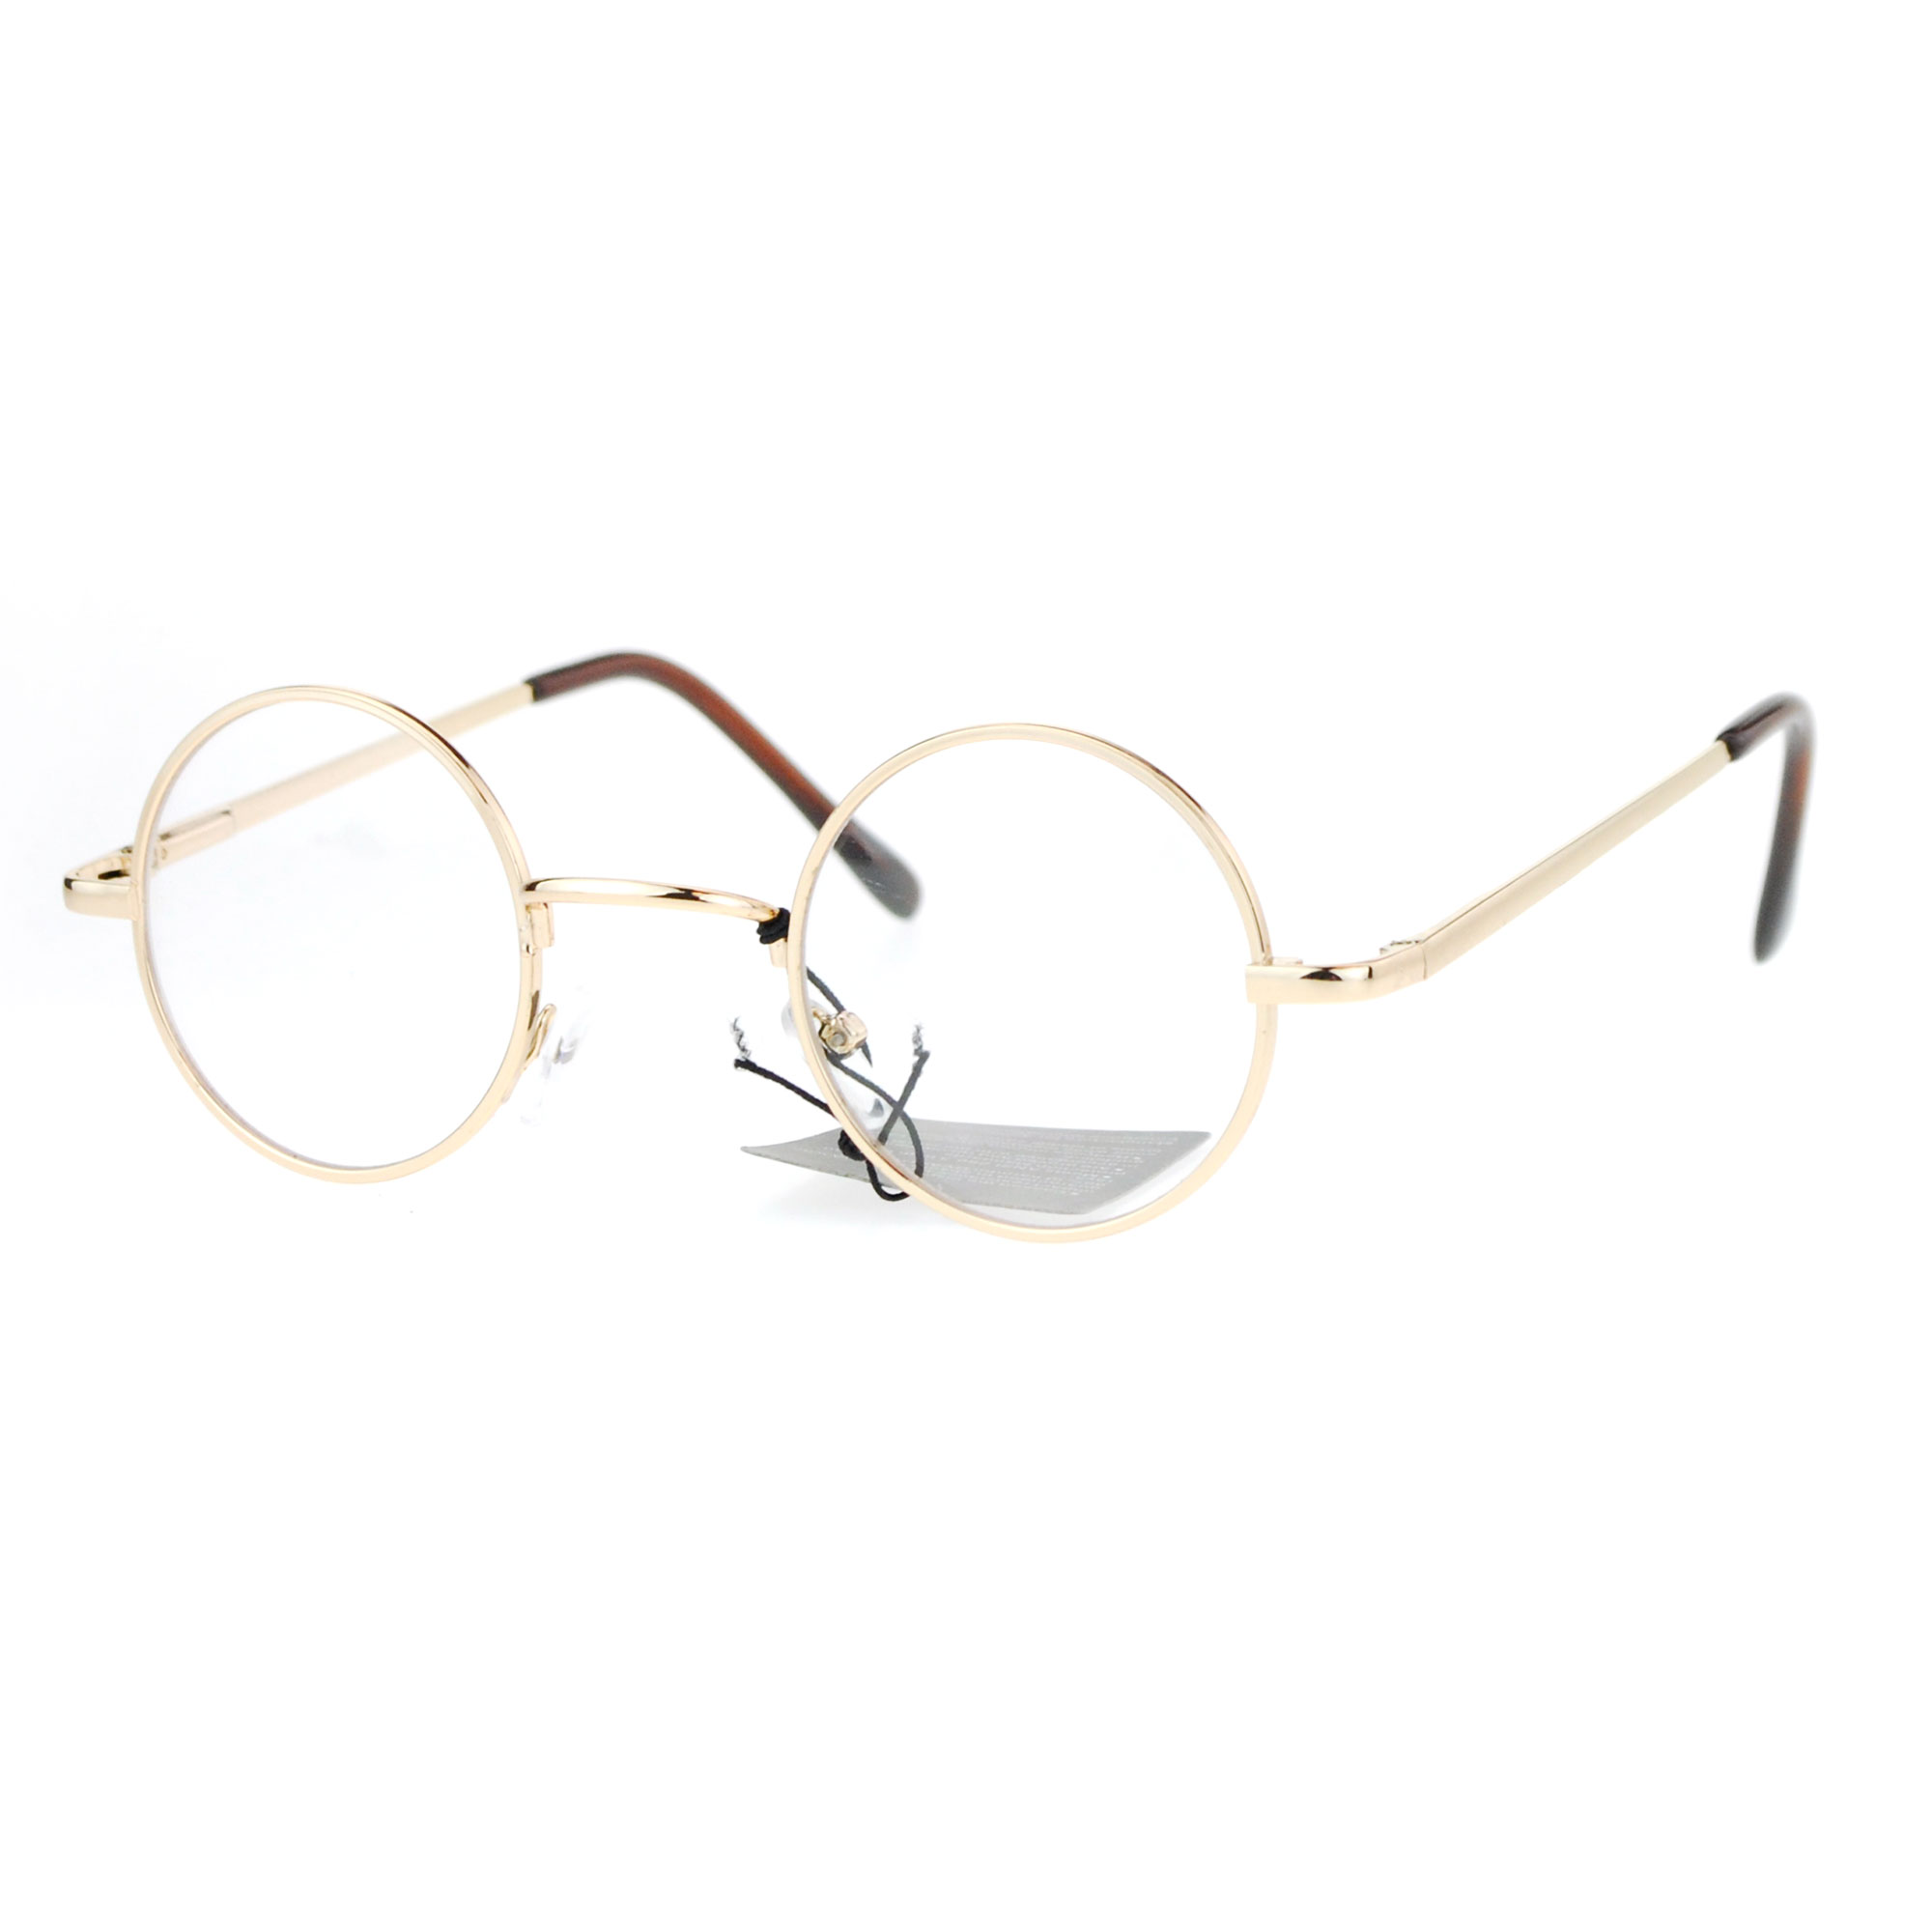 0e3067a82d621 Snug Small Retro Vintage Hippie Round Circle Lens Eye Glasses Gold. About  this product. Picture 1 of 3  Picture 2 of 3 ...